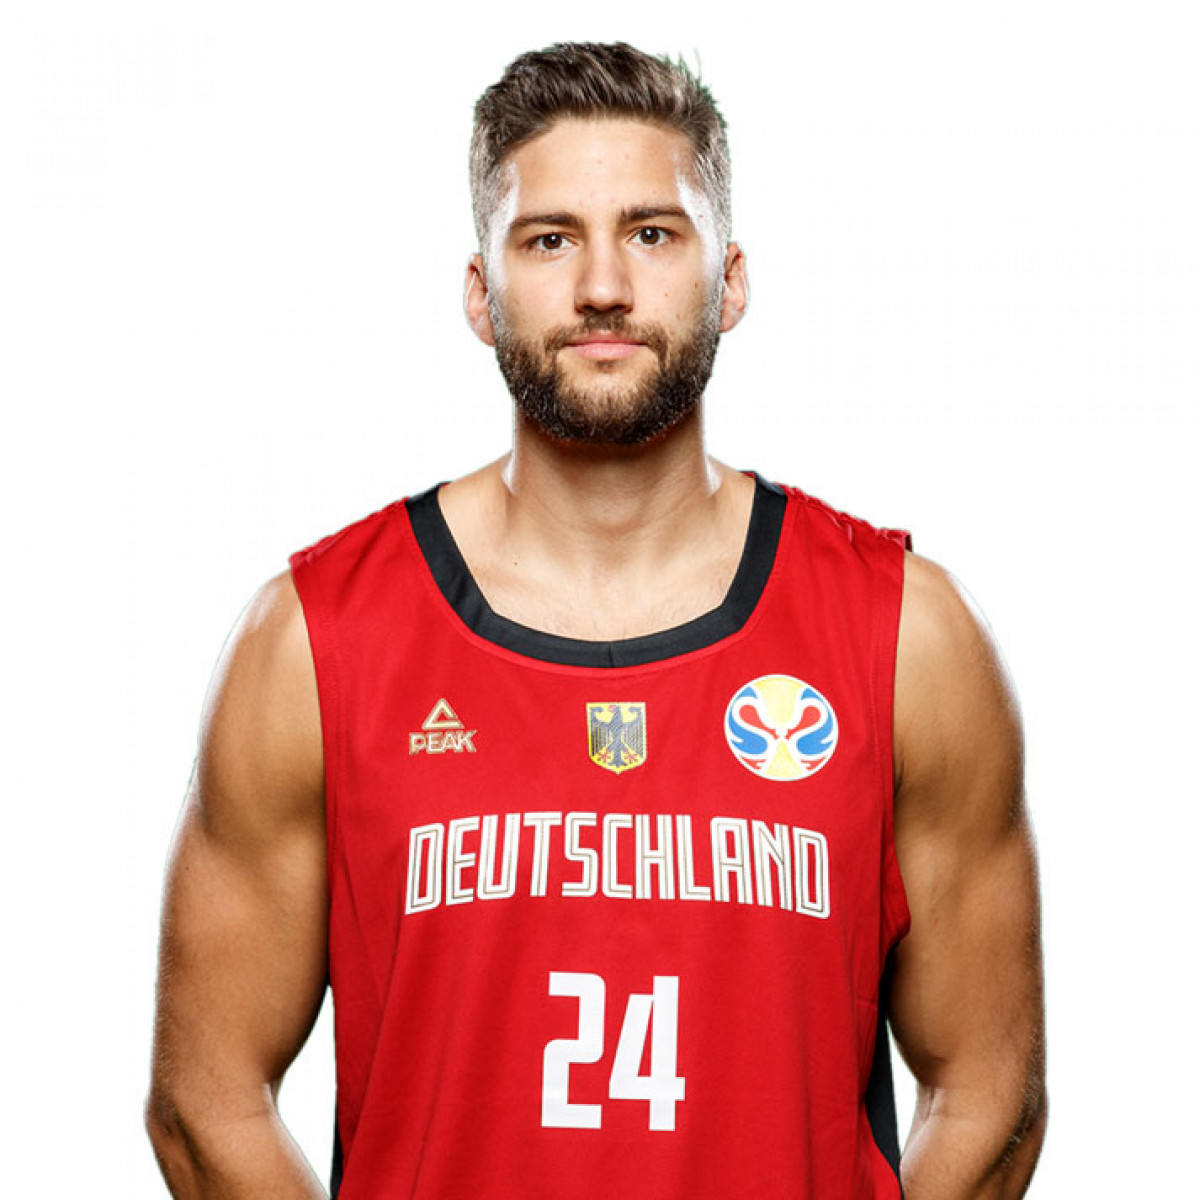 Stats: Maximilian Kleber sets NBA career-high in Orlando